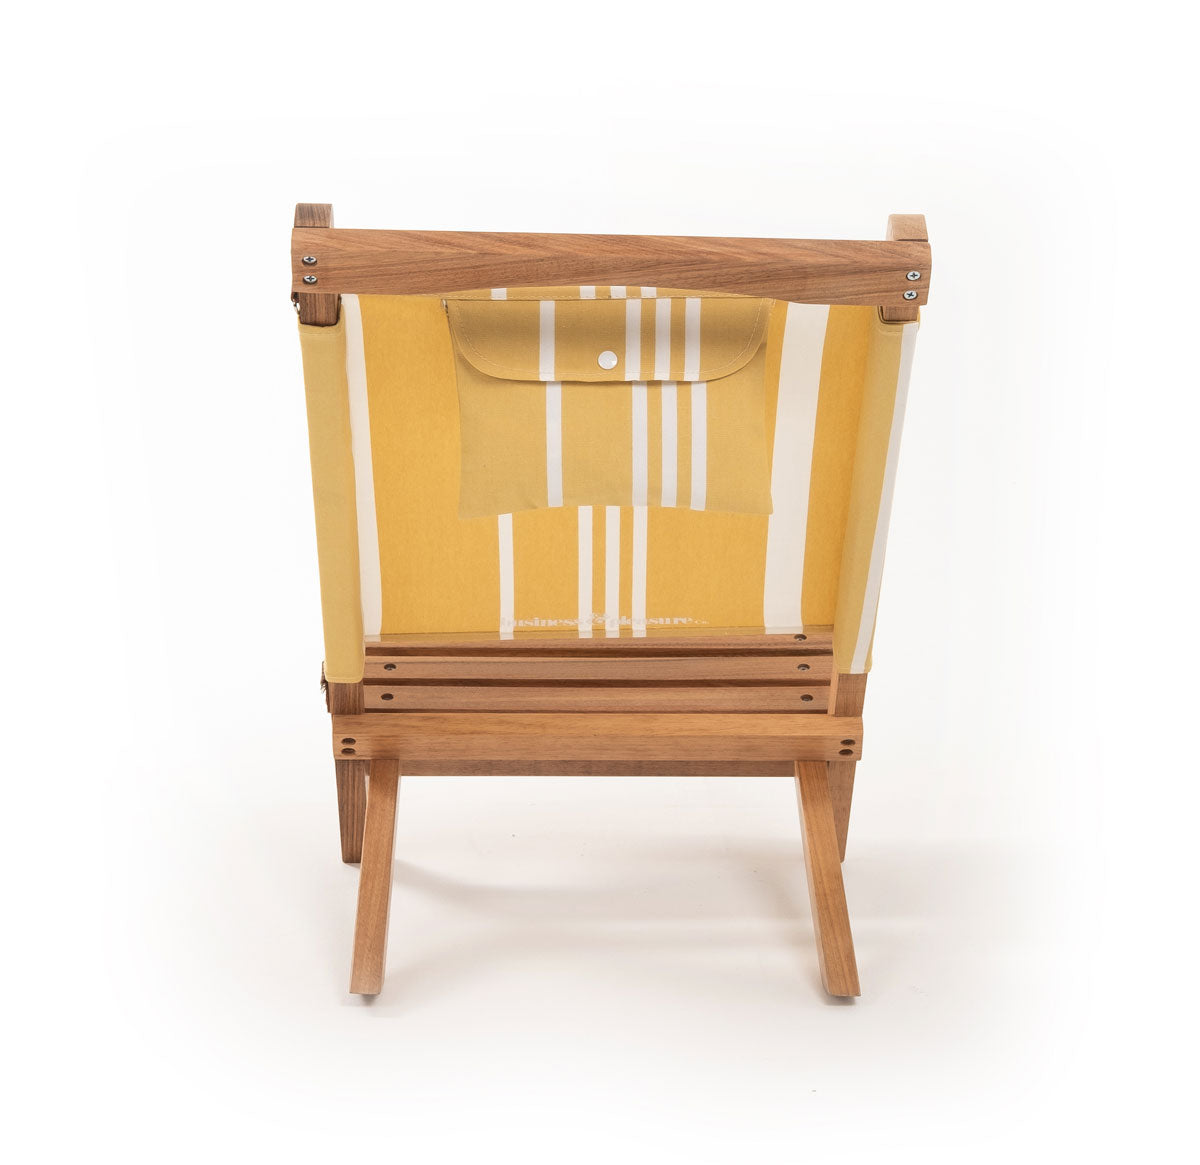 The 2-Piece Chair - Vintage Yellow